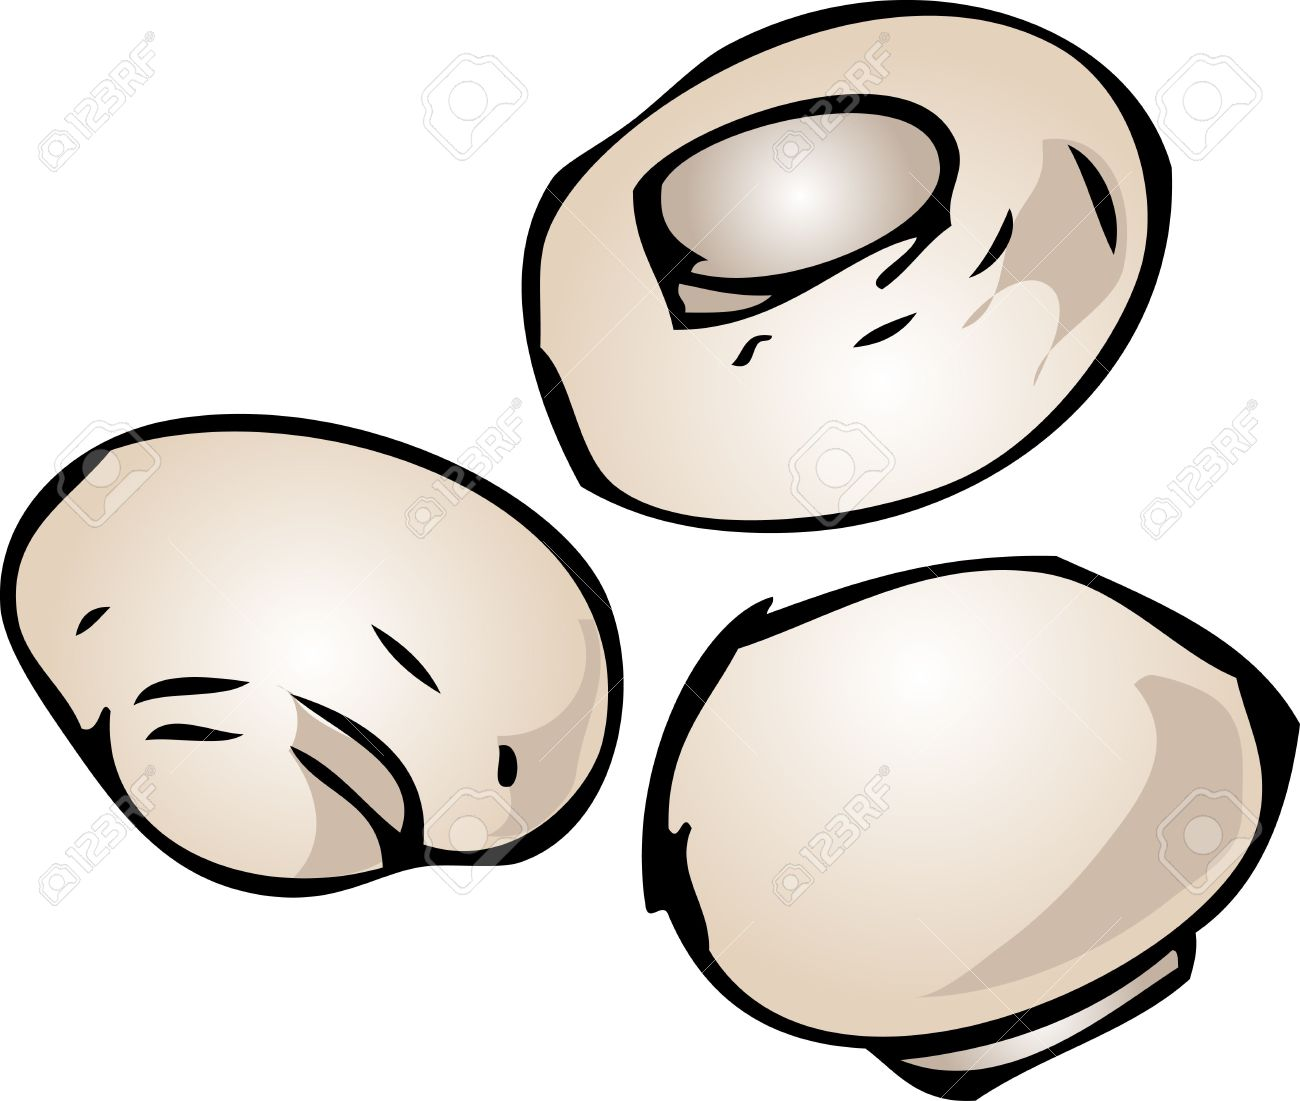 Mushroom pencil and in. Button clipart hand